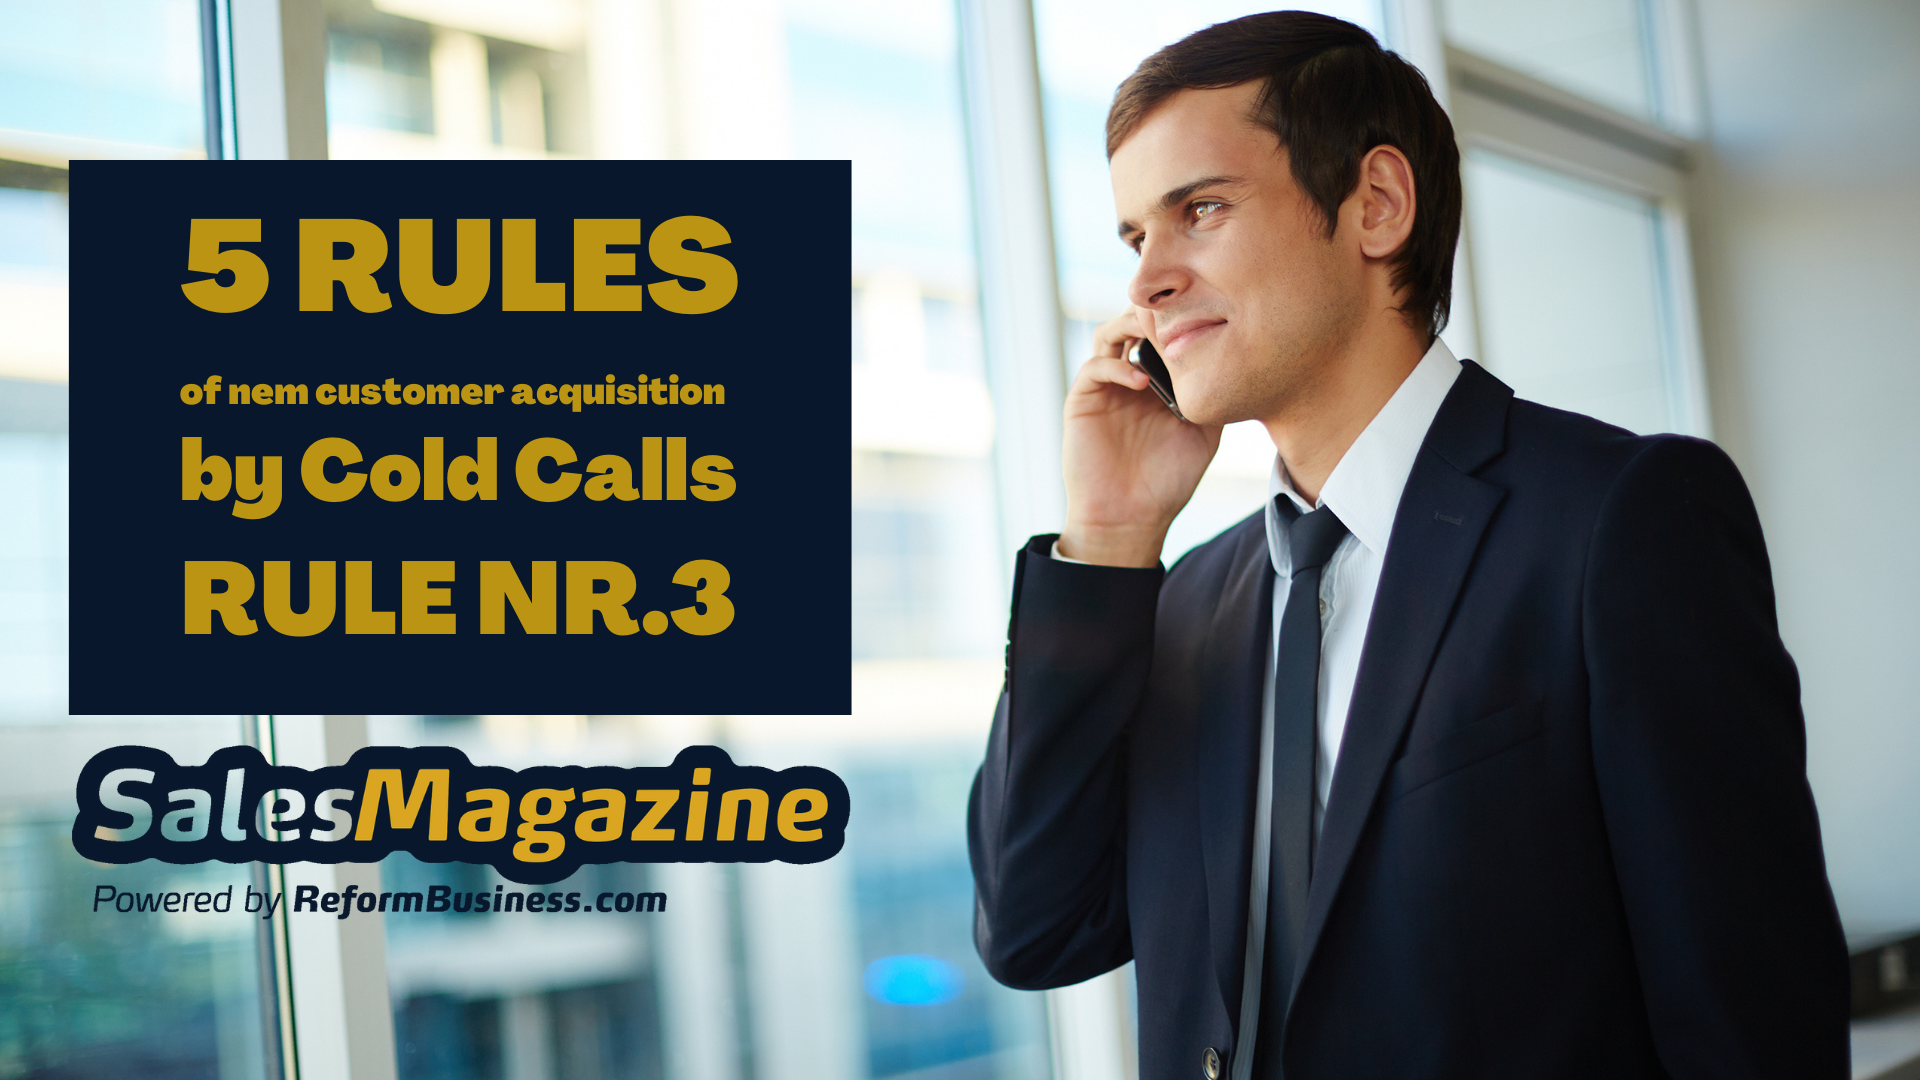 cold-call-center-5-rules-words-tonality-reformbusiness